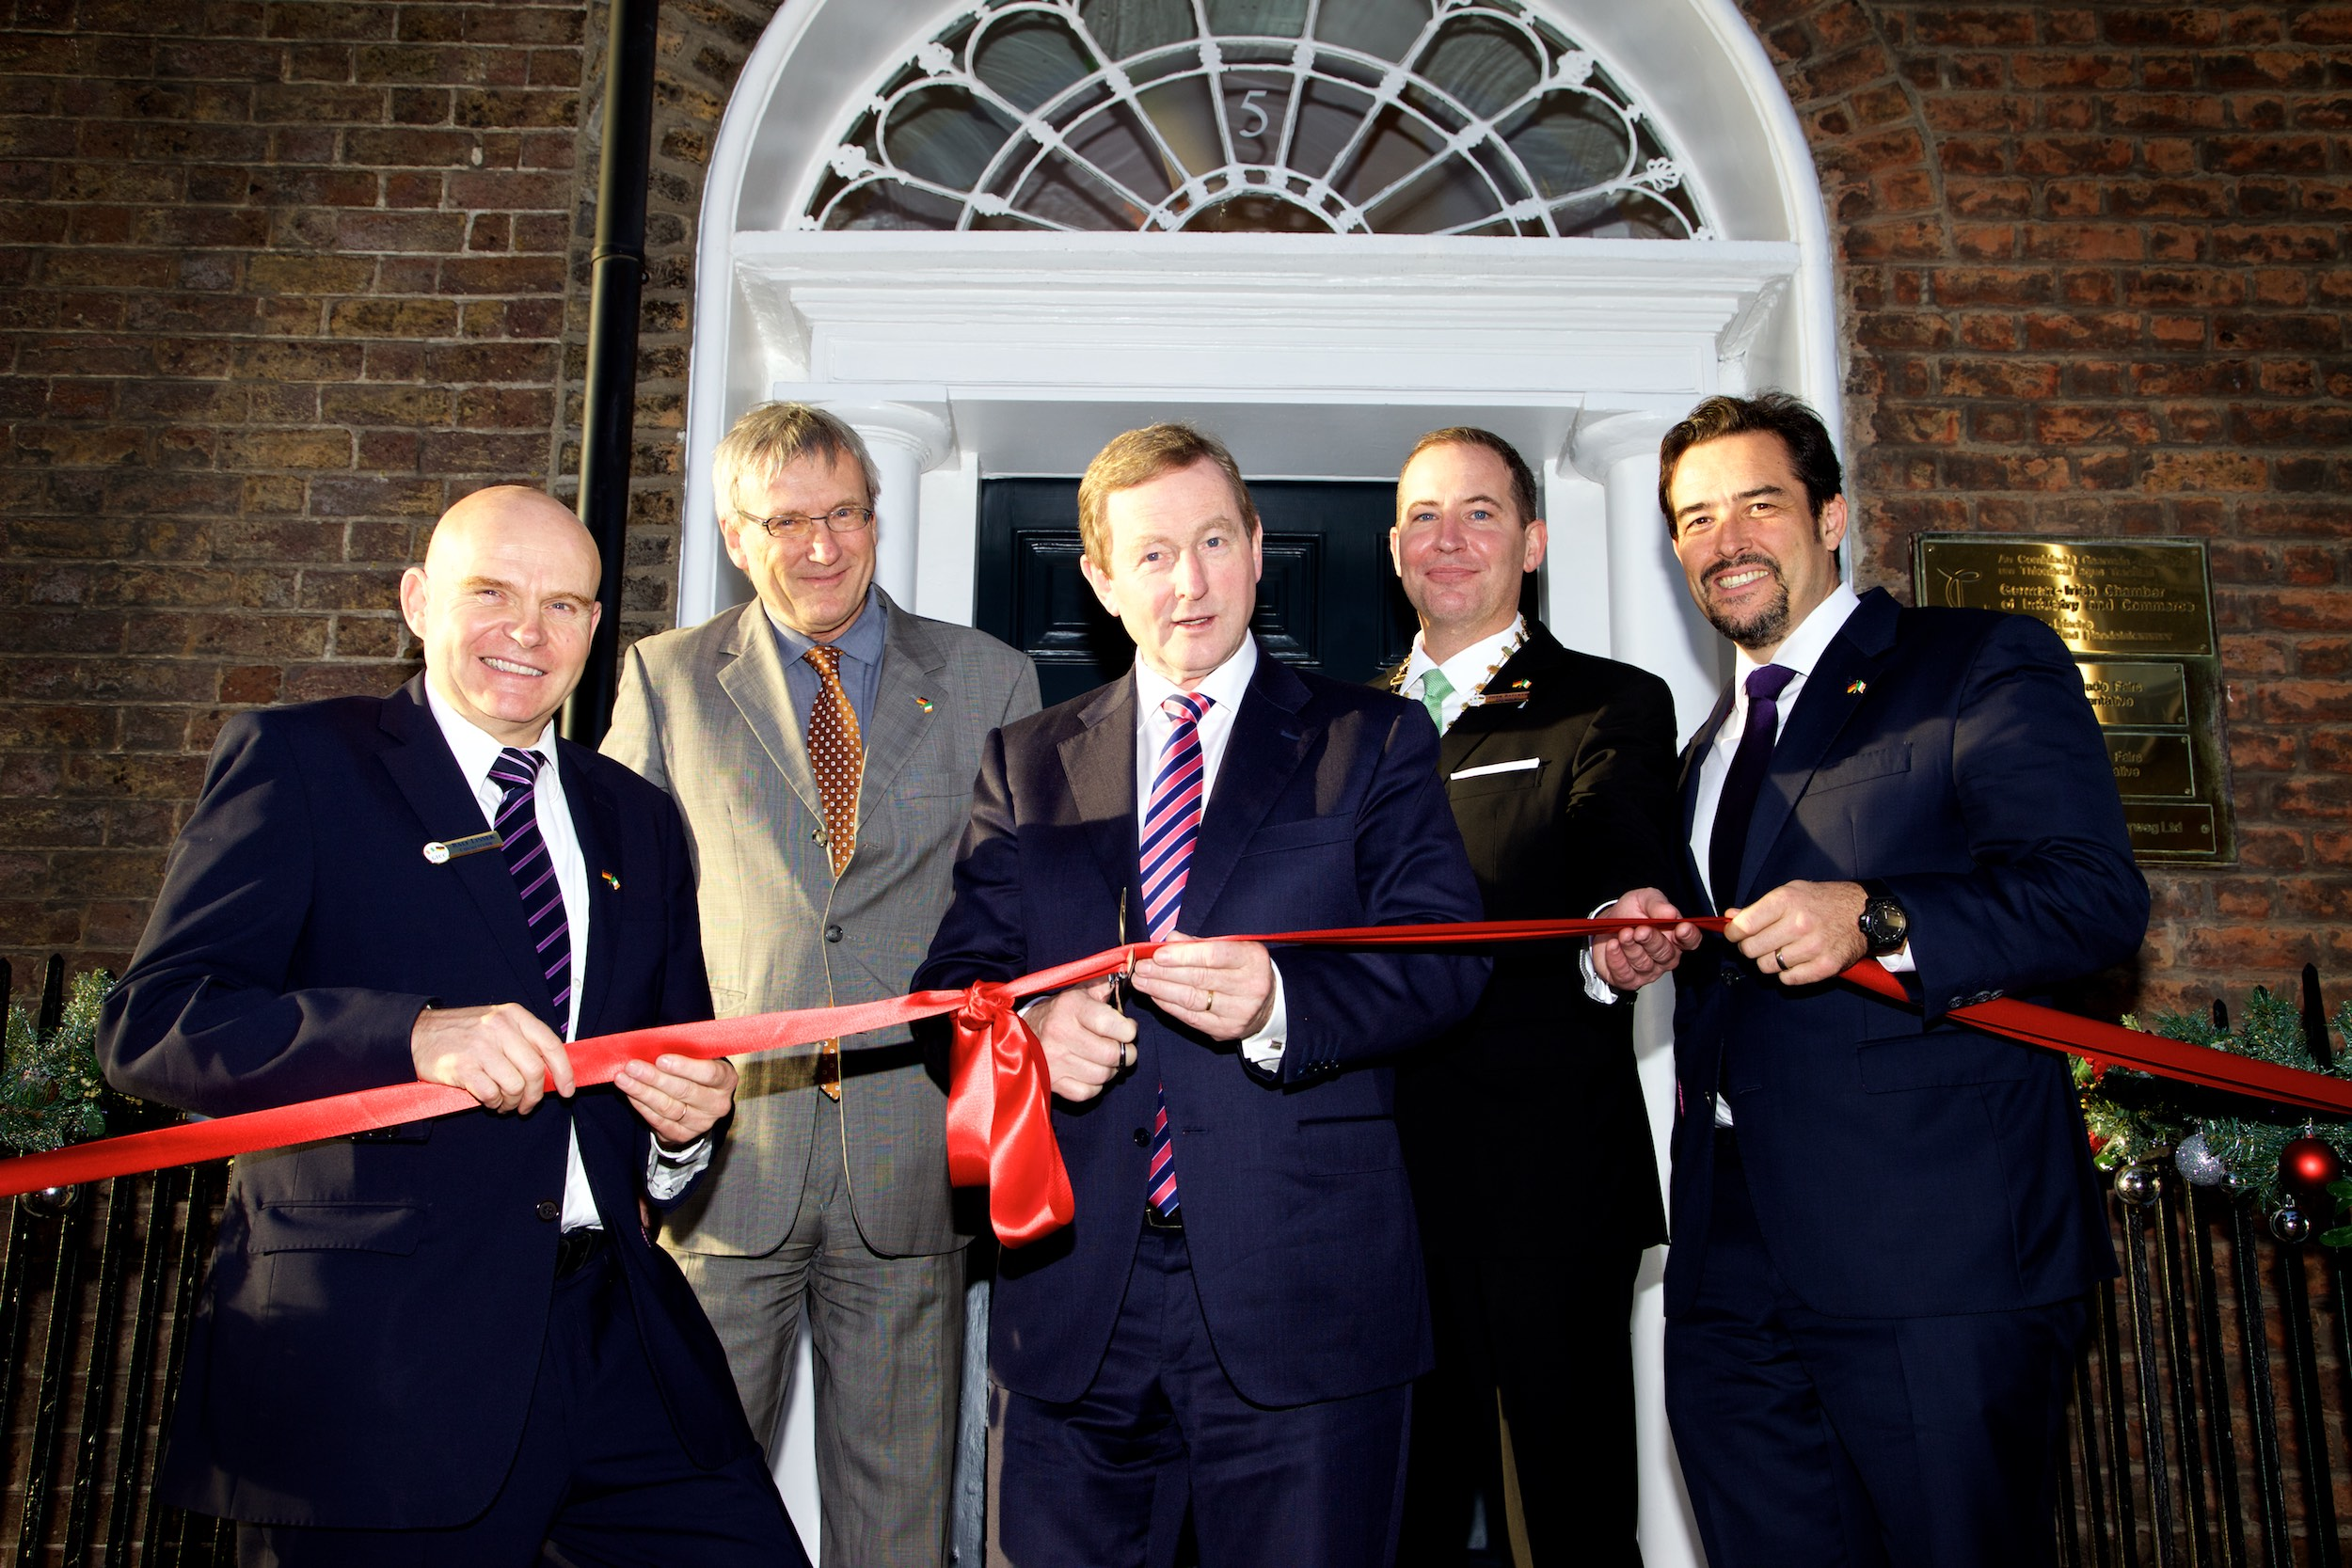 Taoiseach Opens German – Irish Chamber's New Office